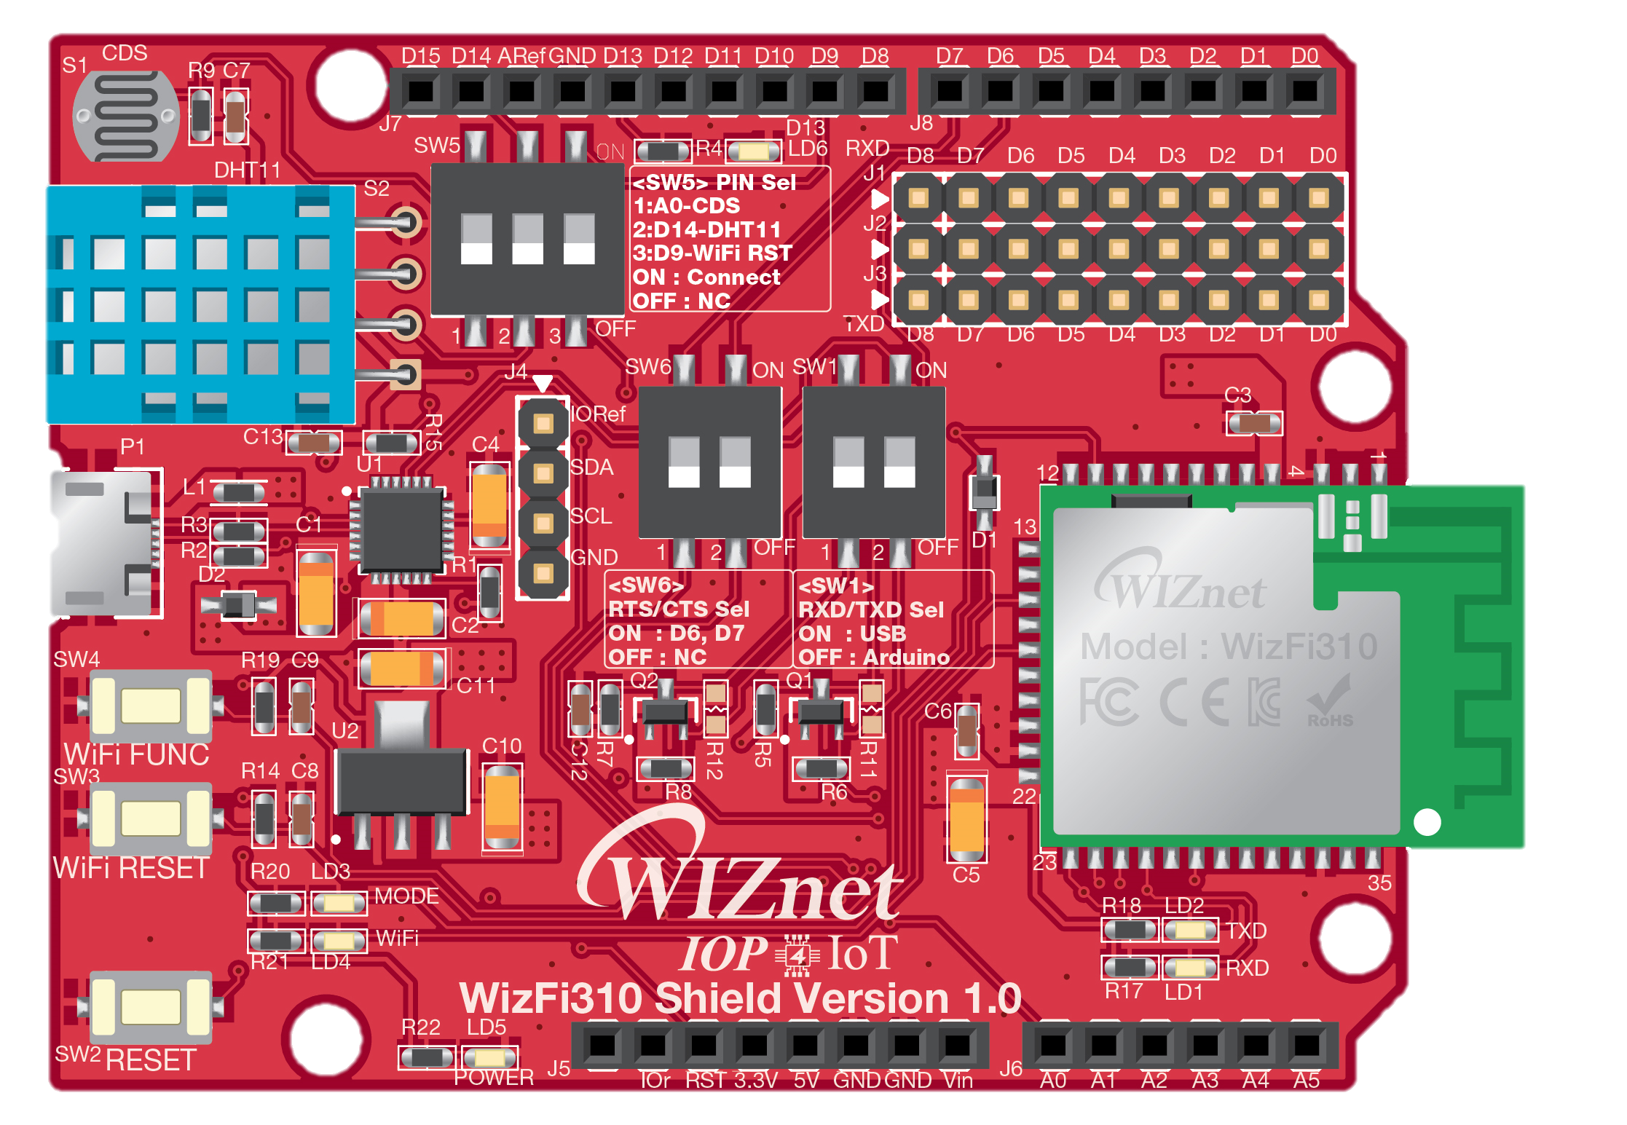 WizFi310 Shield Top